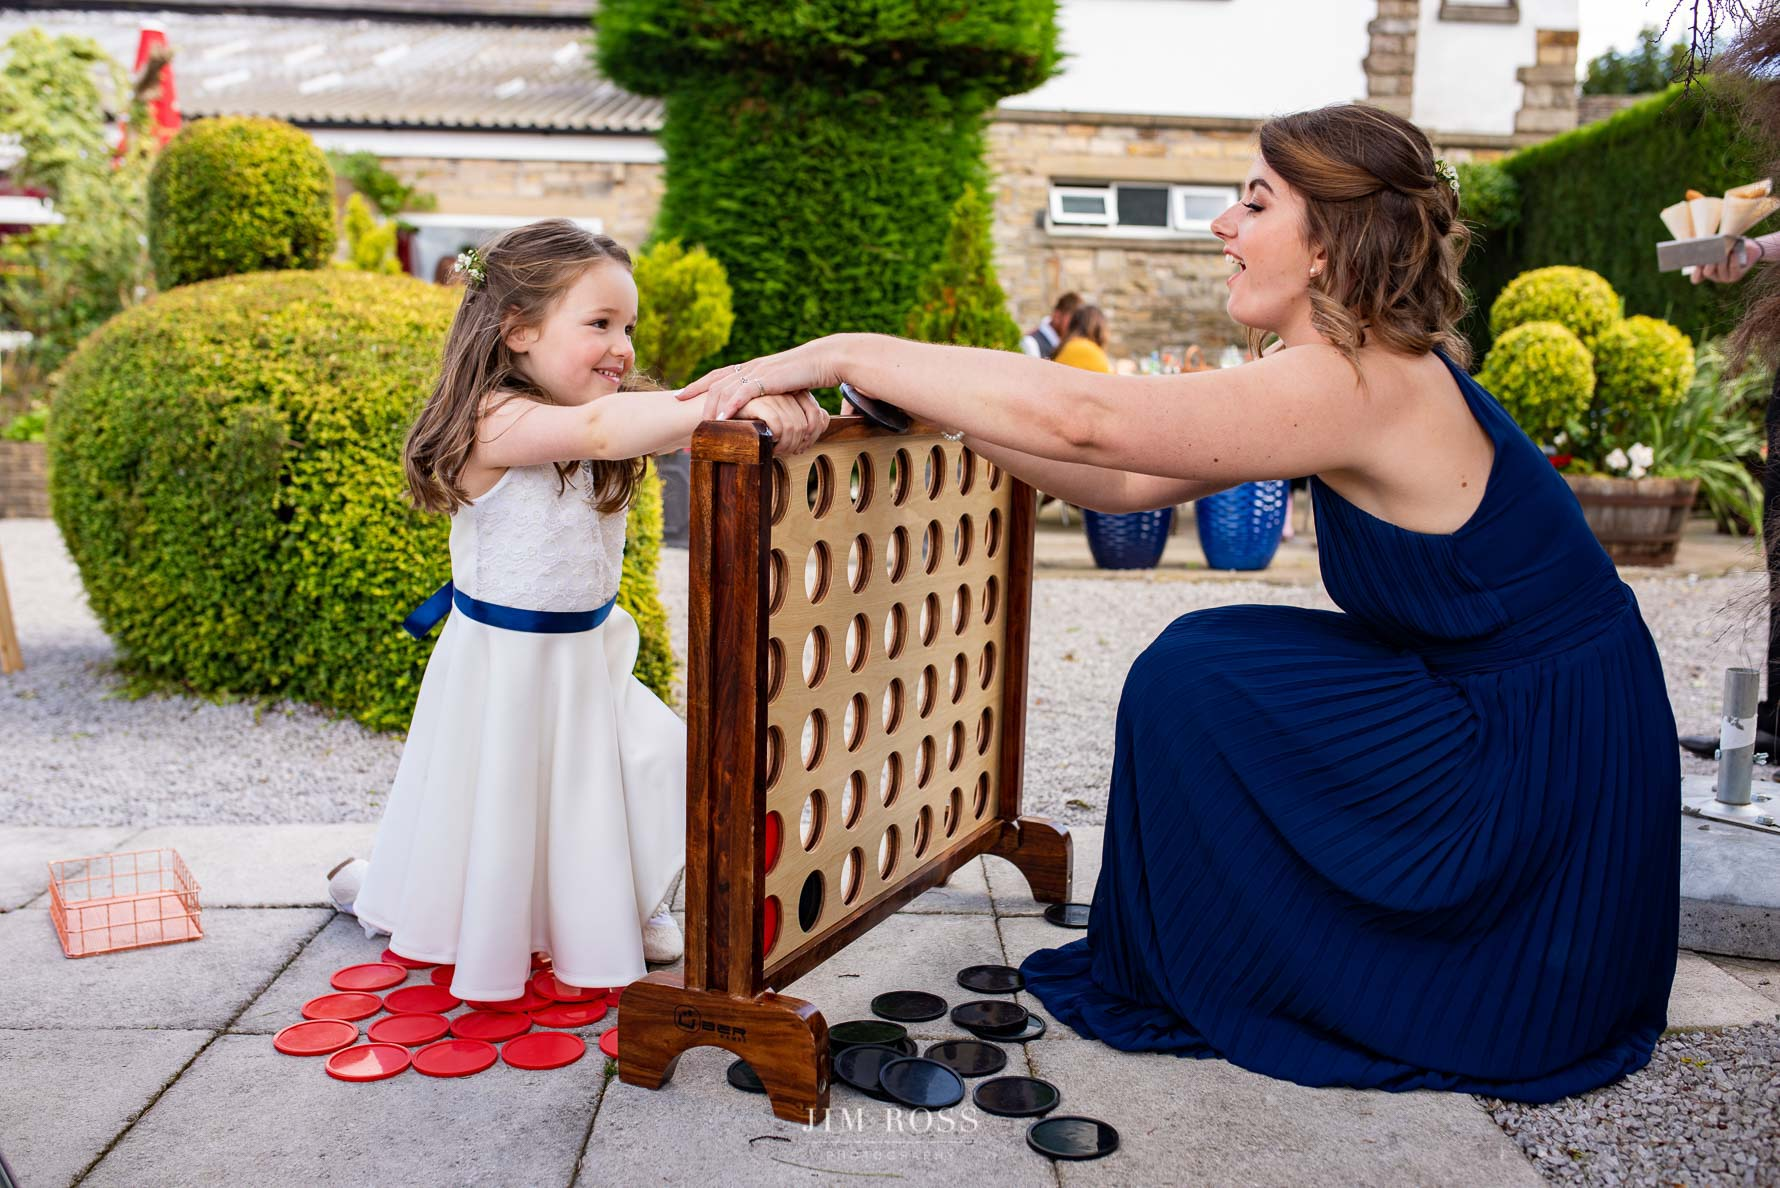 Connect Four wedding lawn games